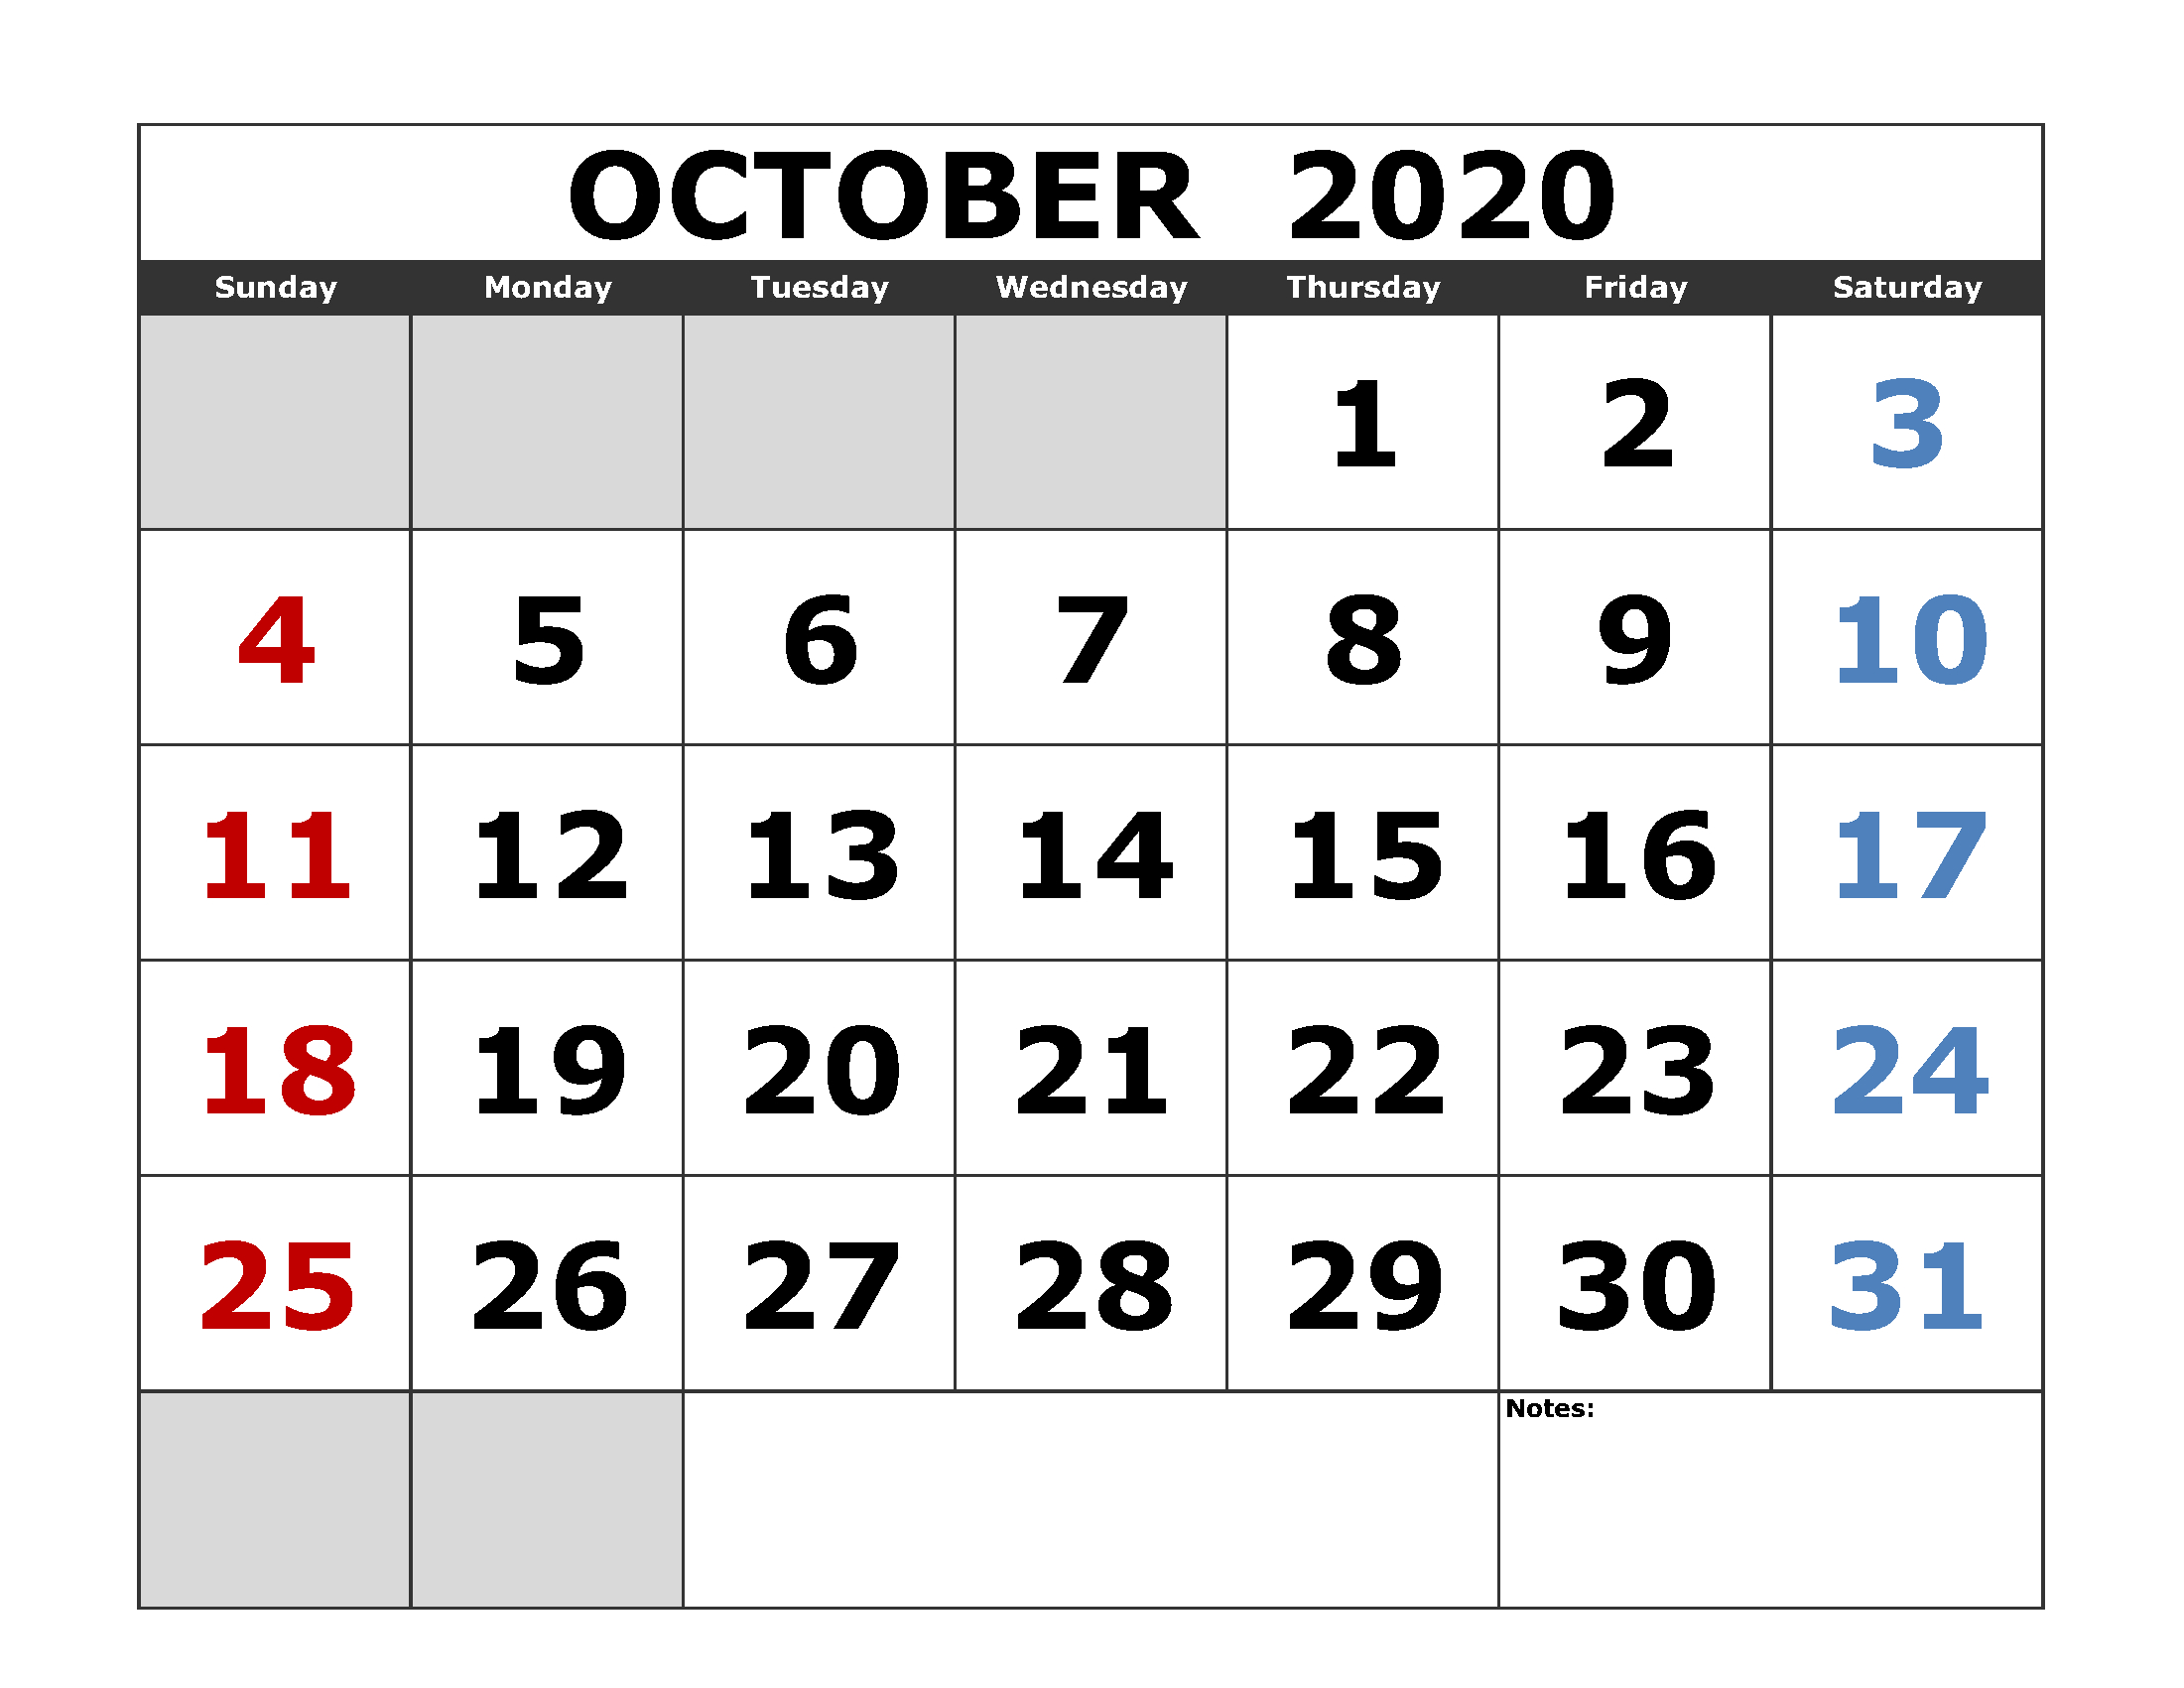 October 2020 Calendar Printable Tips You Will Read This Year within Large Numbers Free Printable Calendar 2020